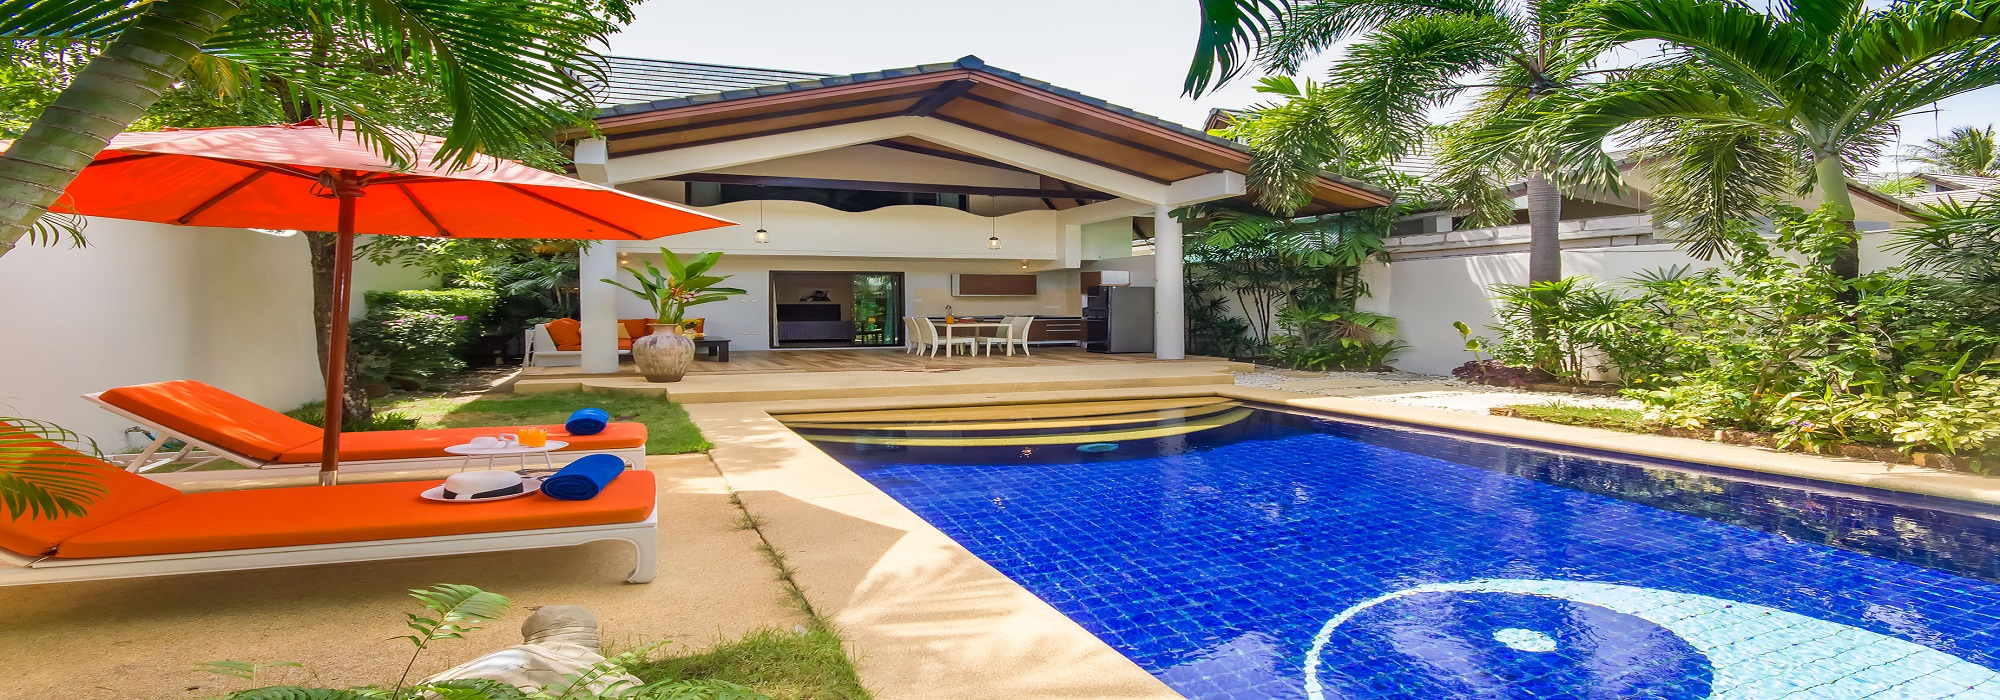 Fo rent Koh Samui Ban Tai villa 2 bedrooms pool beach